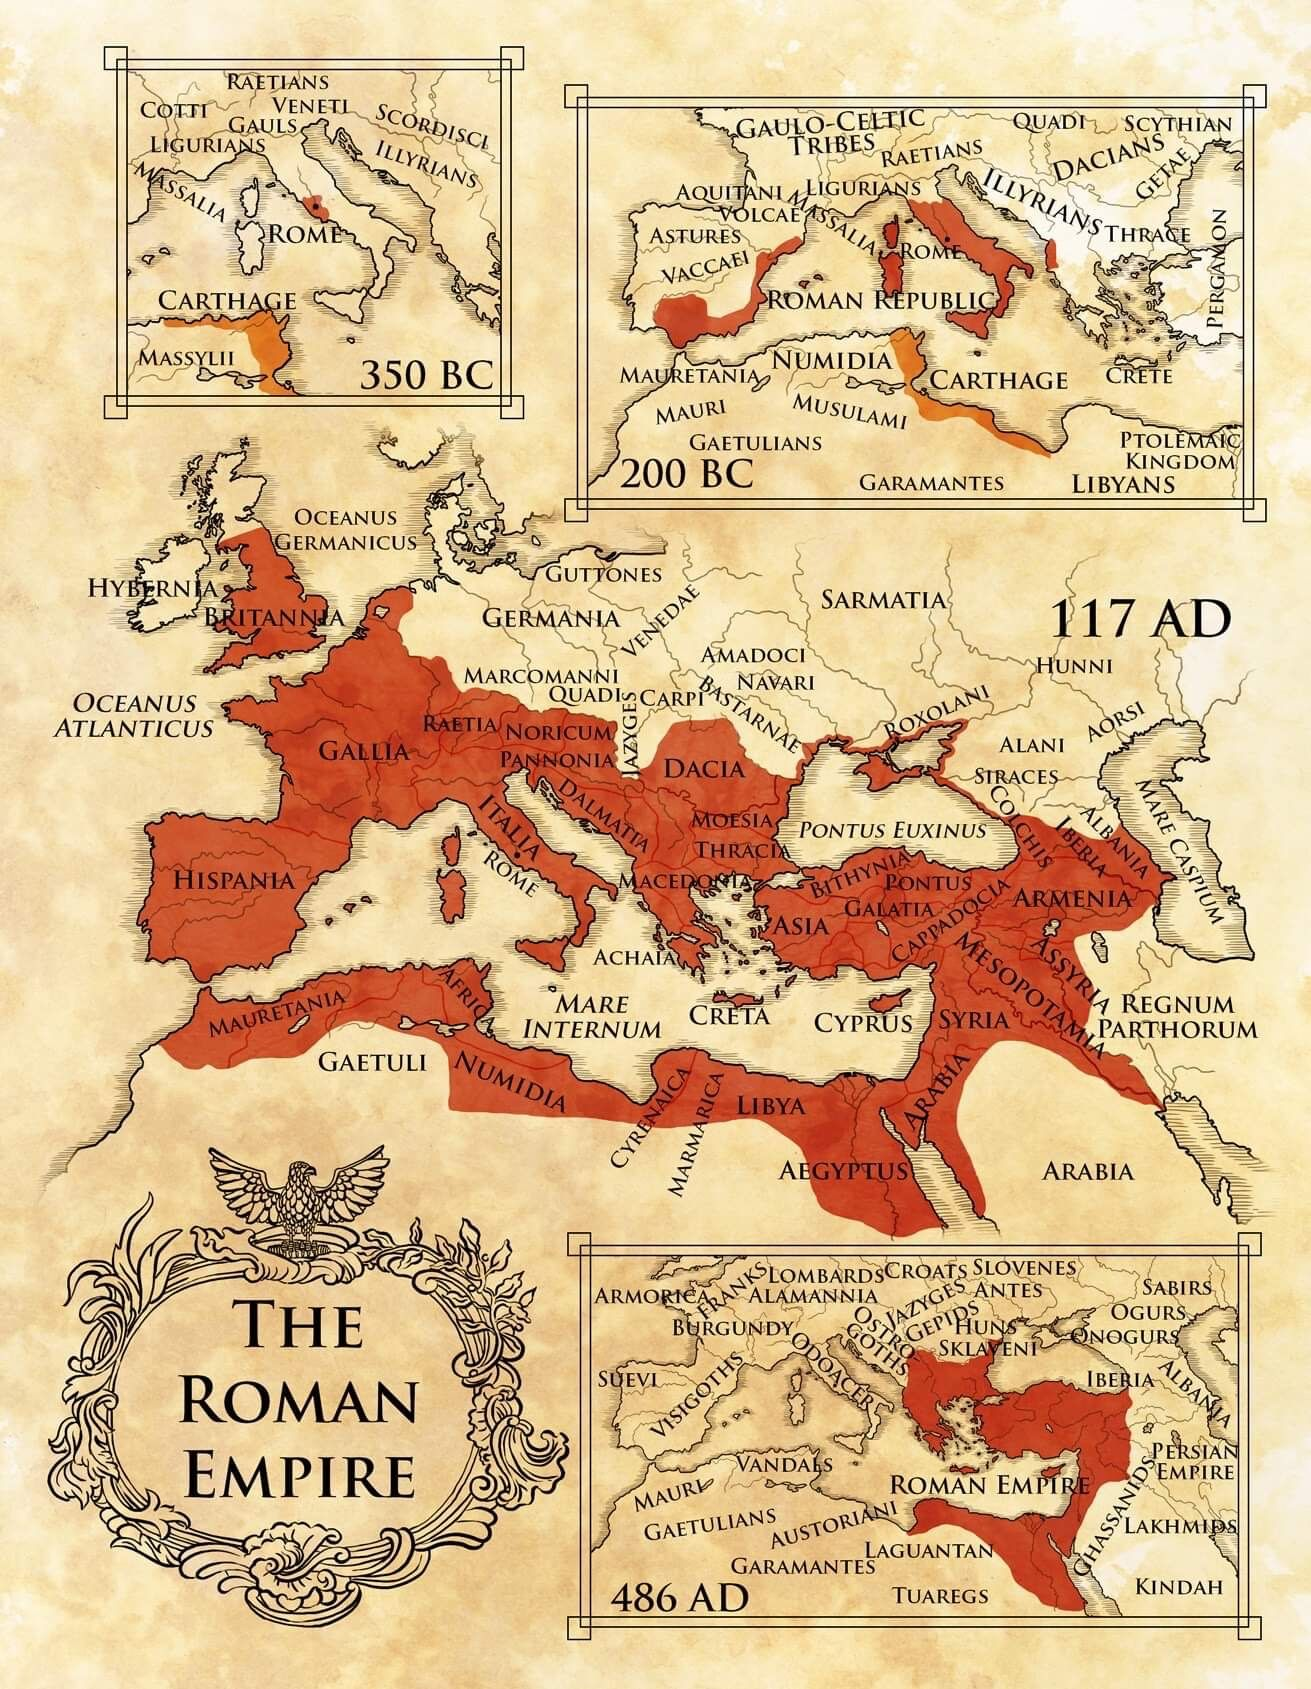 Pin By Arubbo On Rome In 2020 Roman Empire Map Ancient World Maps Rome History